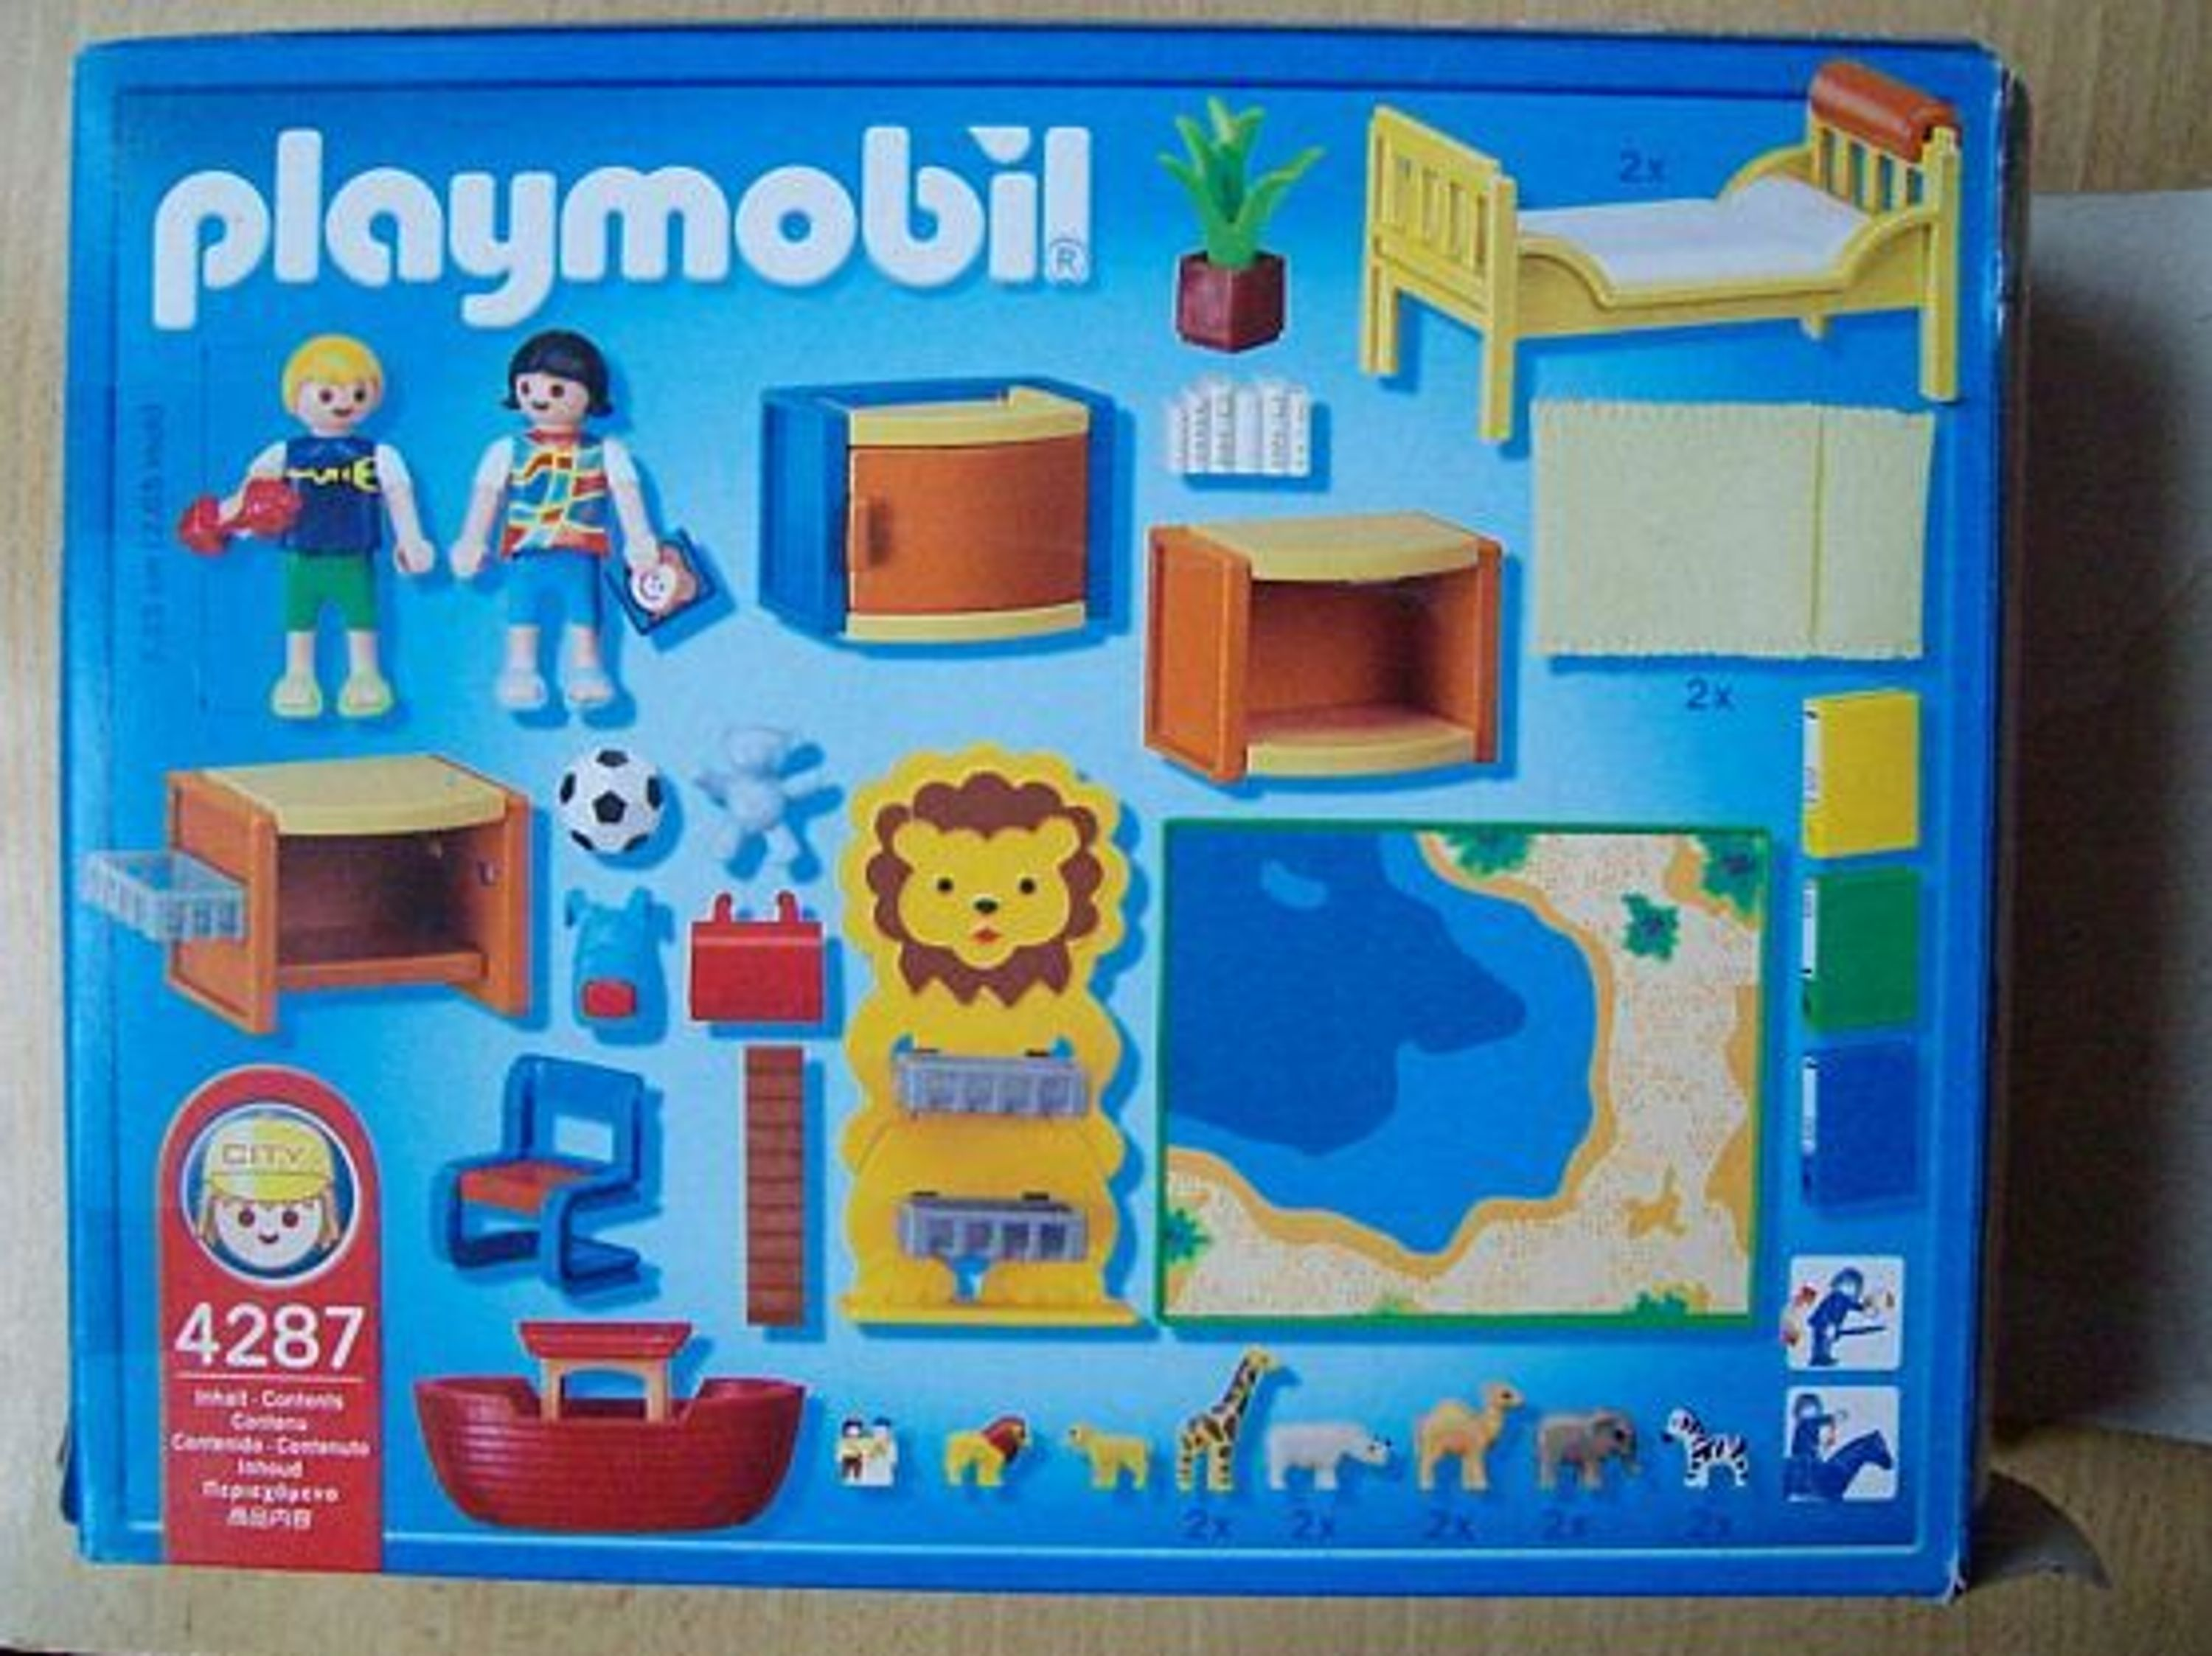 Playmobil 4287 kinderzimmer spielzimmer for Playmobil kinderzimmer 4287